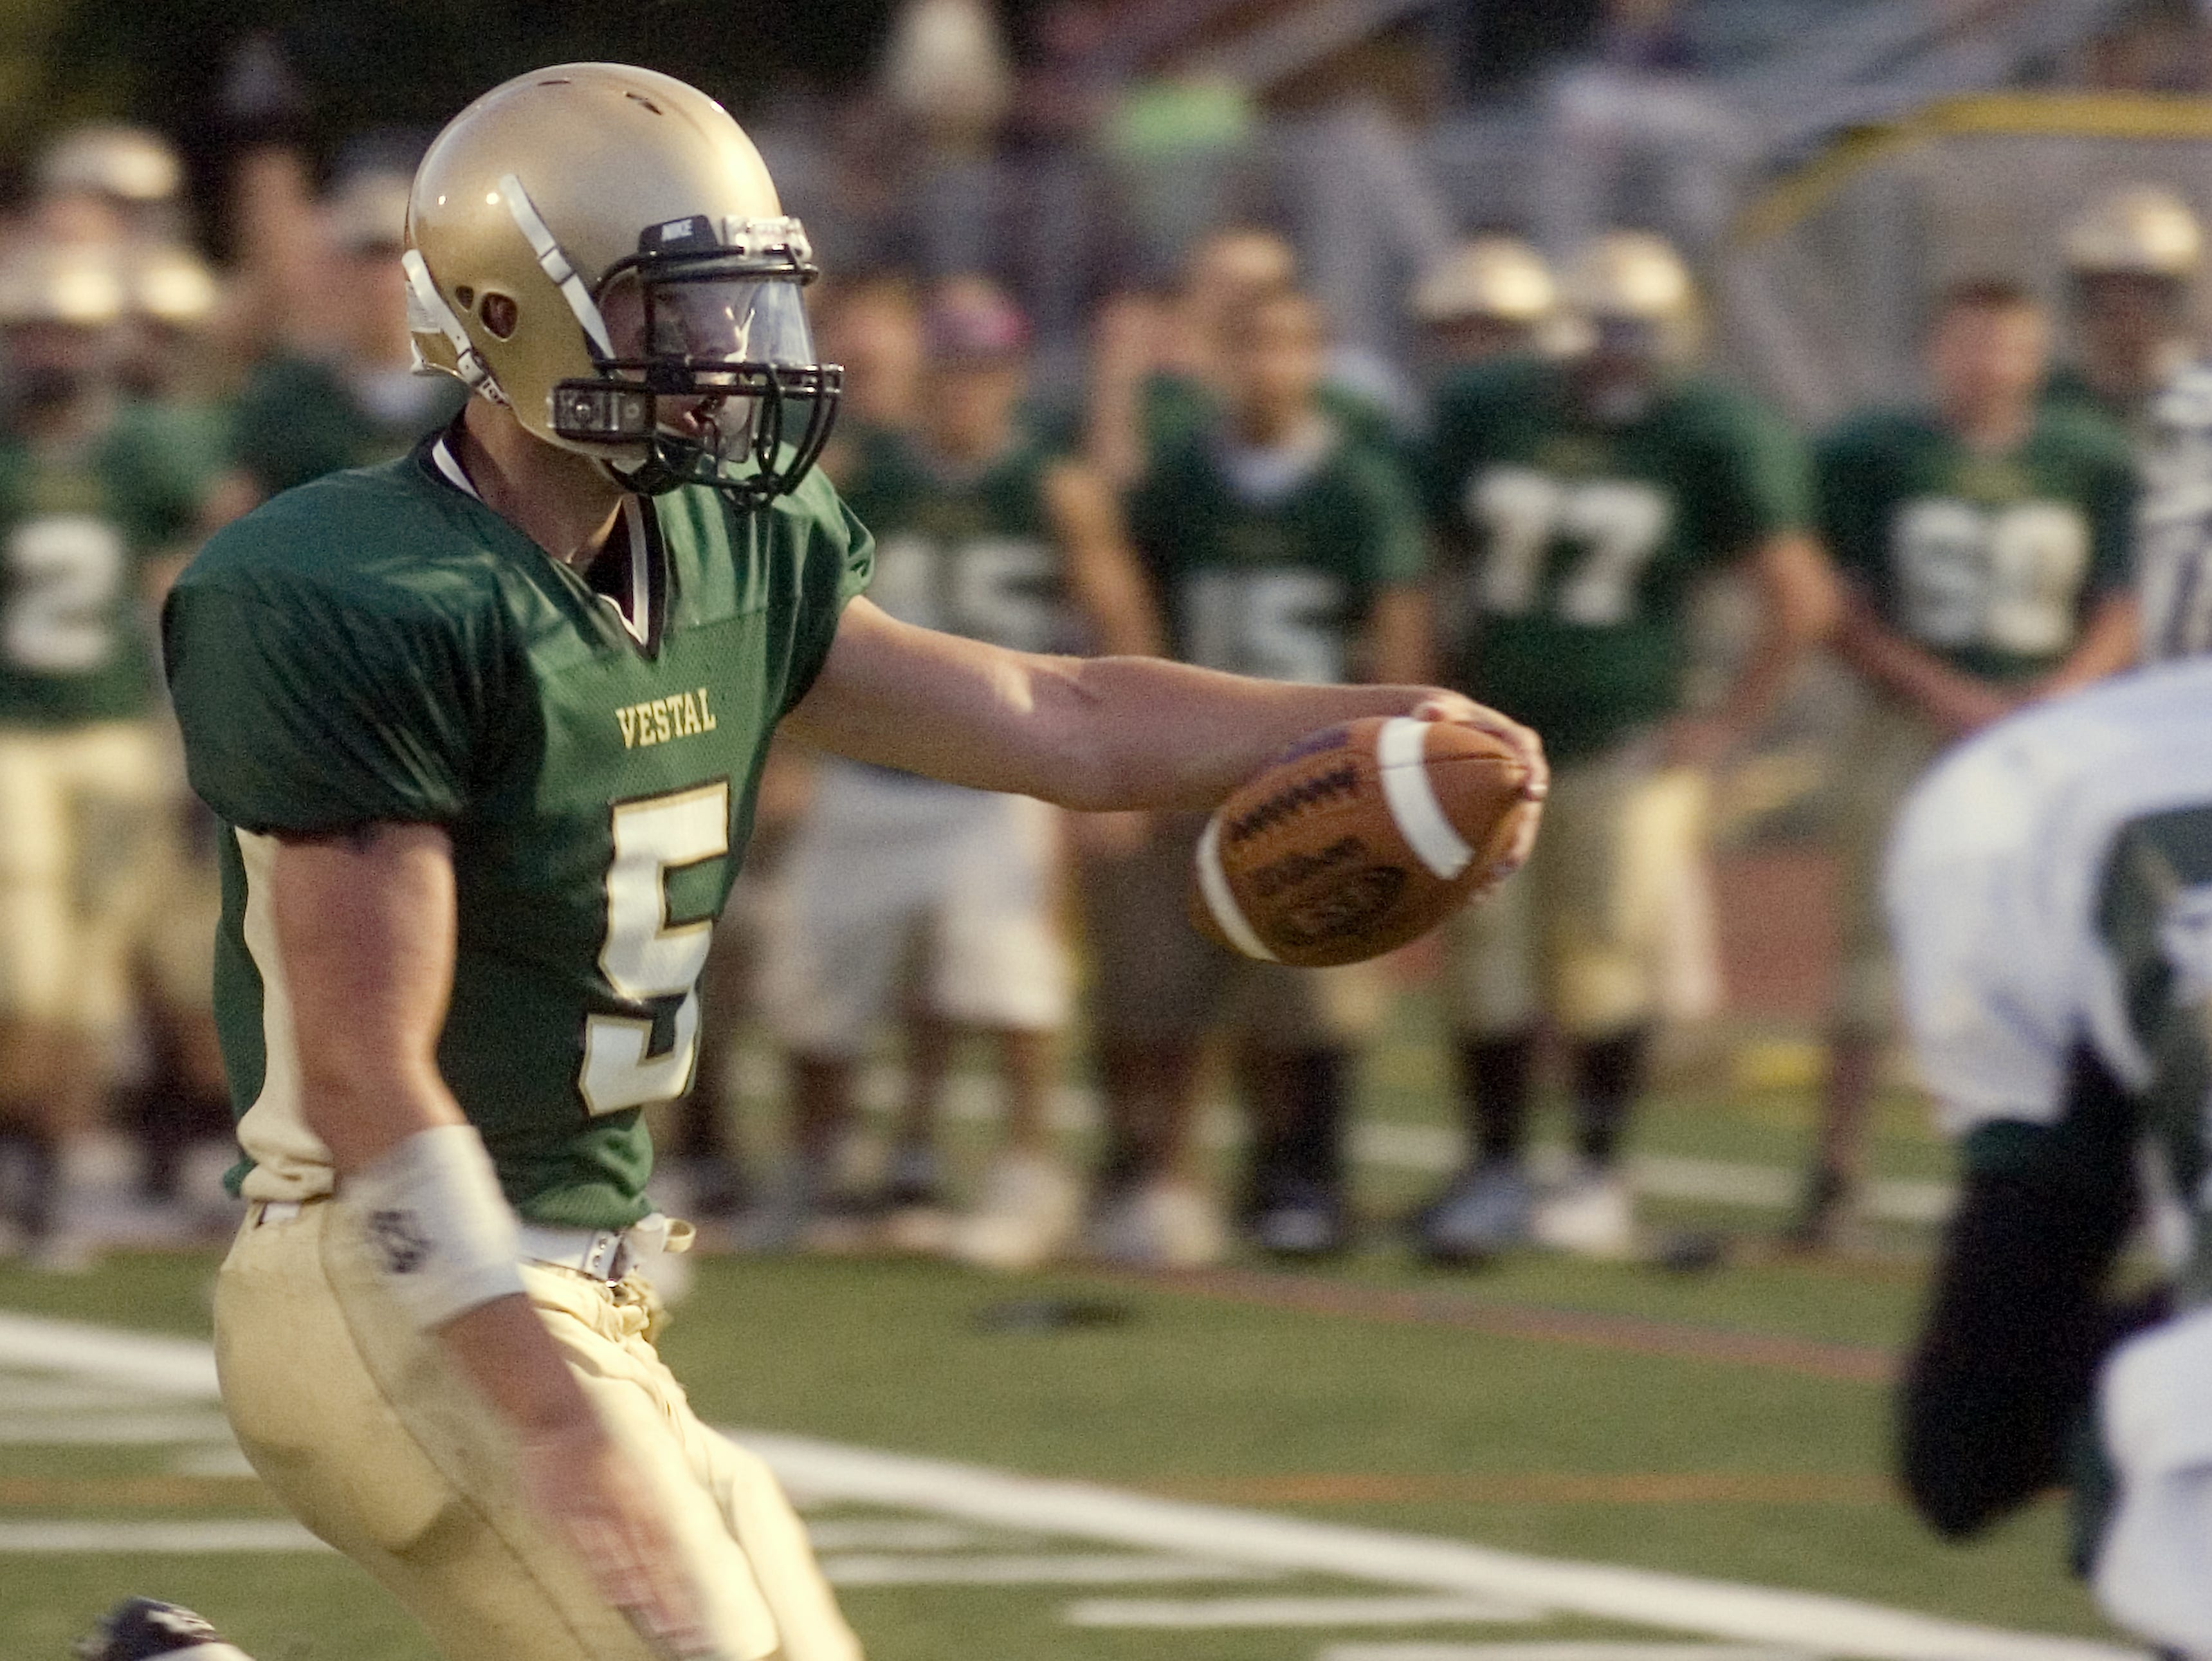 In 2008, Vestal's Cody Scepaniak carries the ball into the end zone for a touchdown in the first quarter of the season-opener against Elmira South Side at Dick Hoover Stadium.